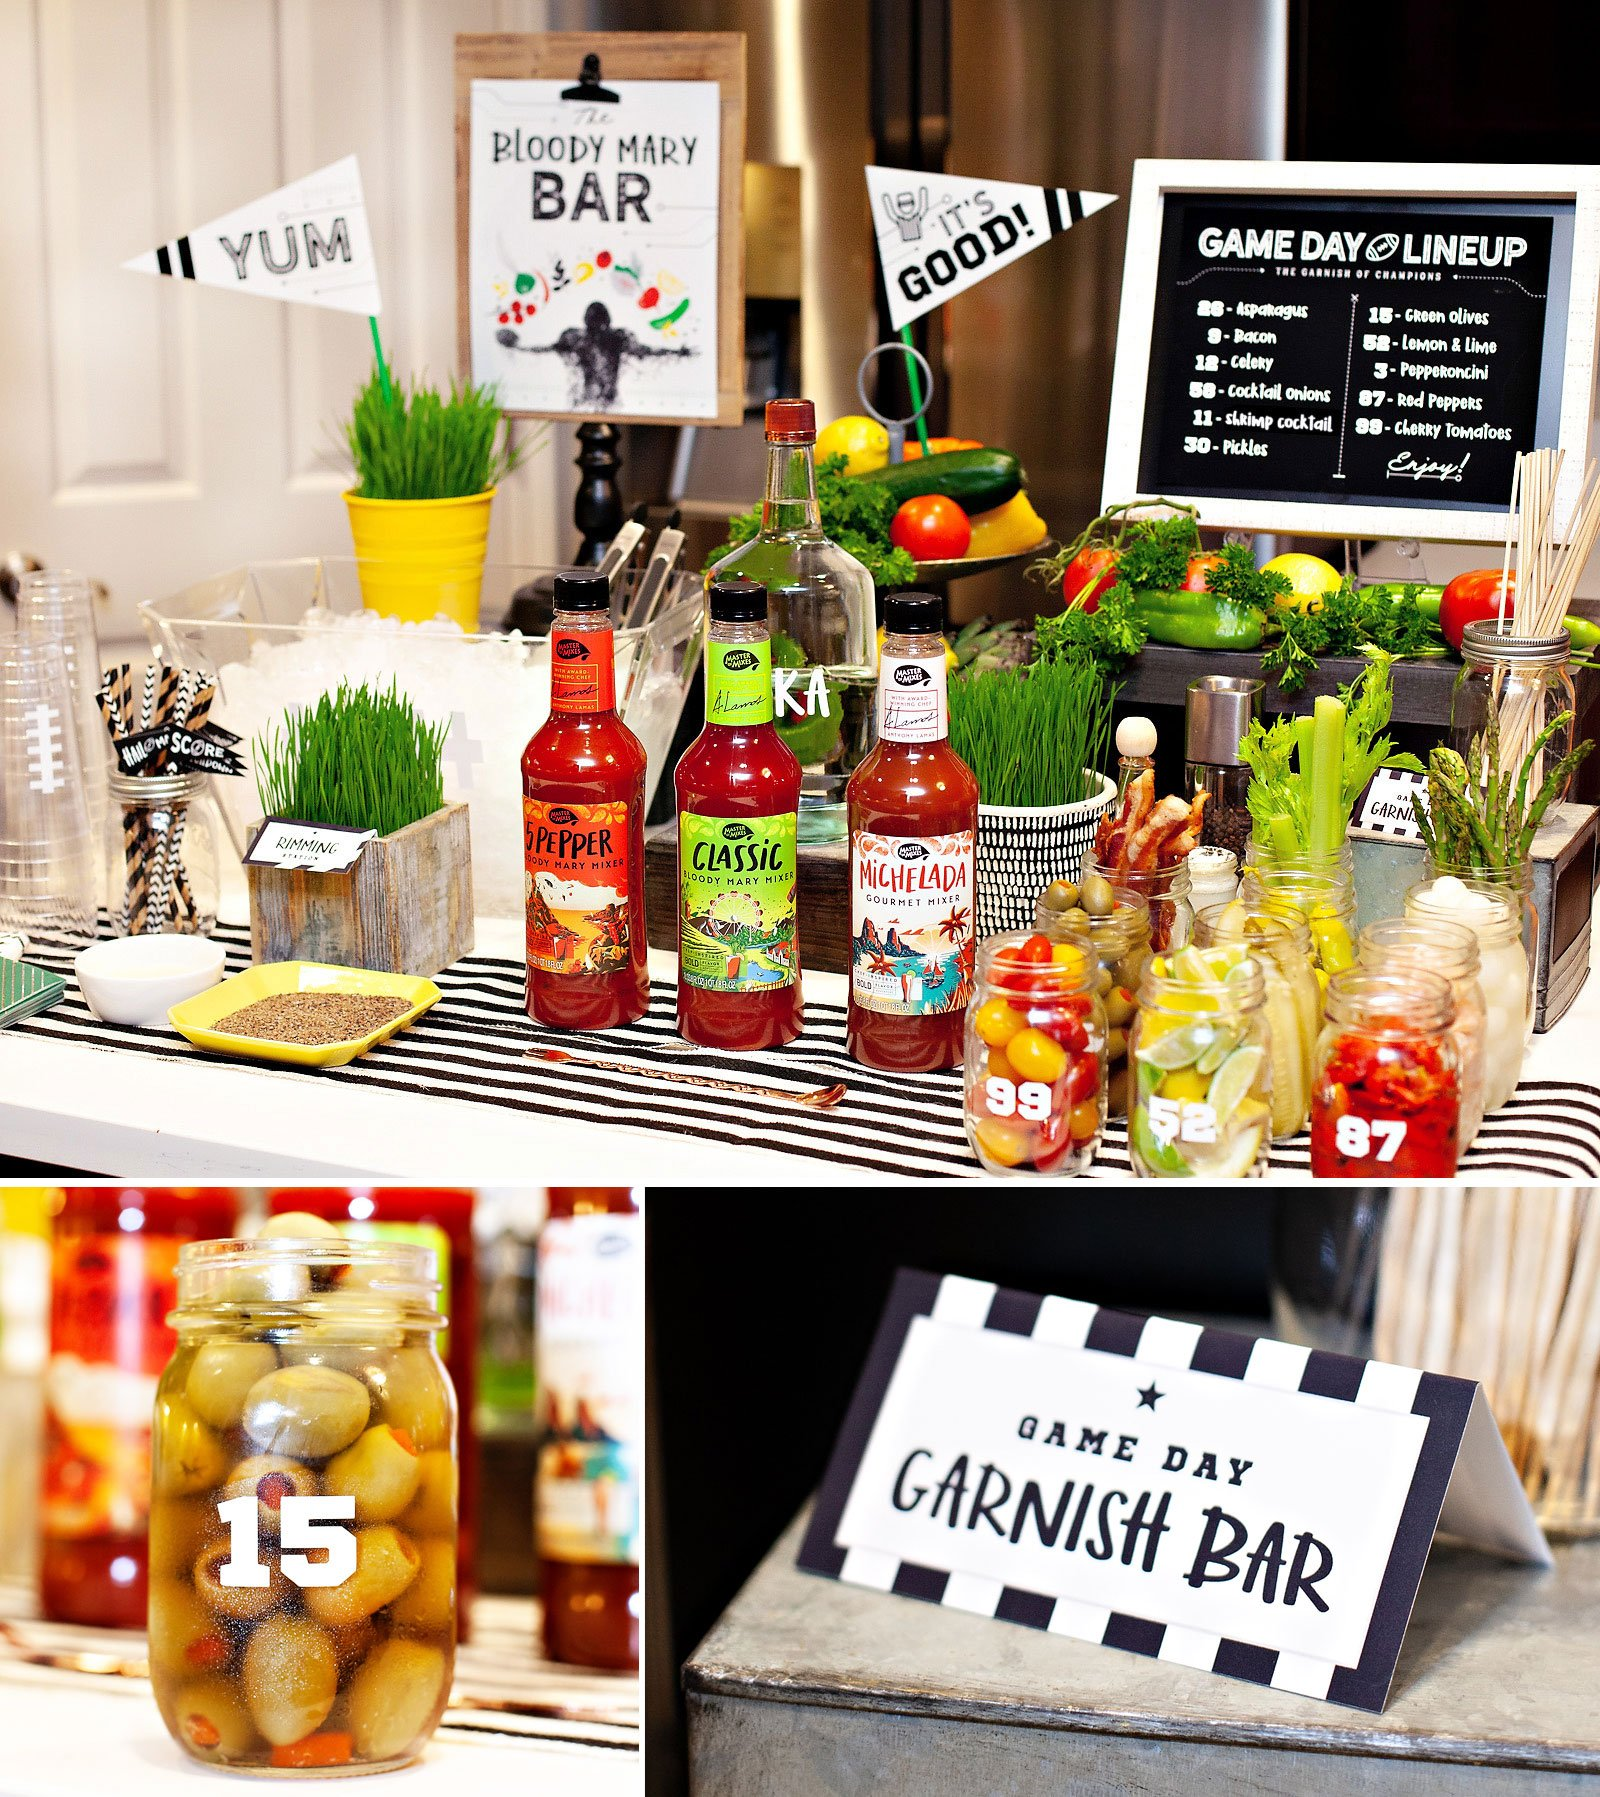 DIY Bloody Mary Station